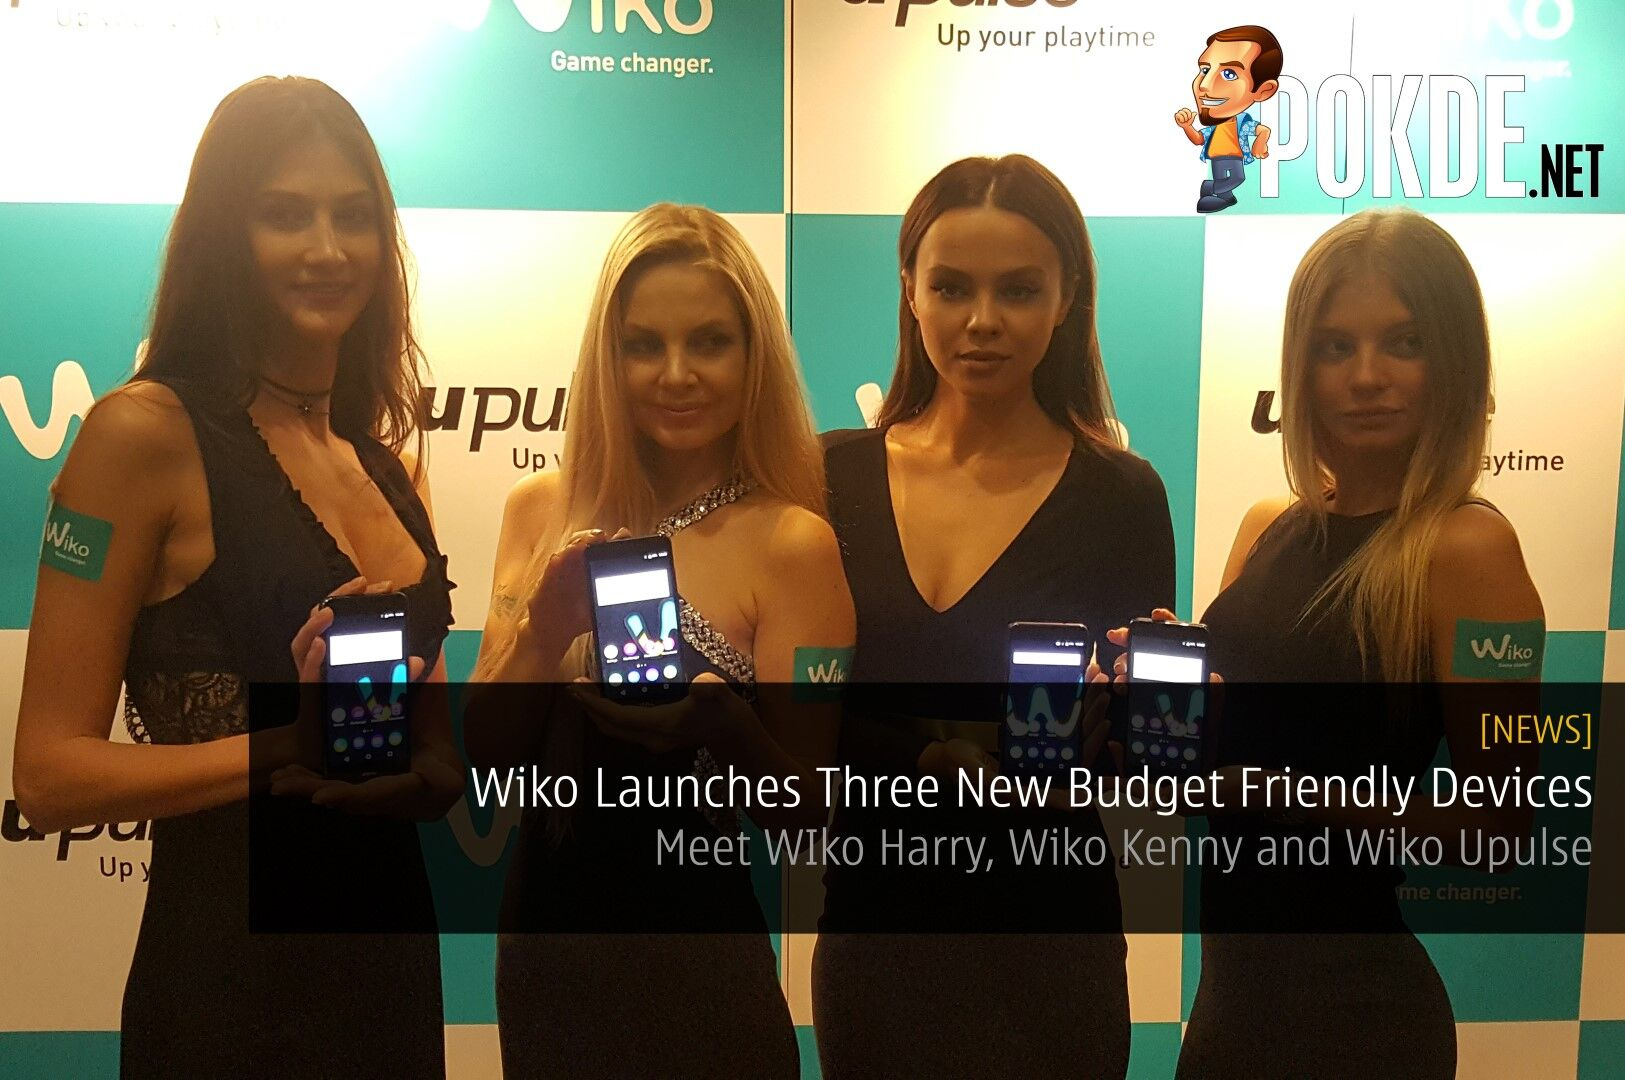 Wiko Launches Three New Budget Friendly Devices - Meet WIko Harry, Wiko Kenny and Wiko Upulse 25